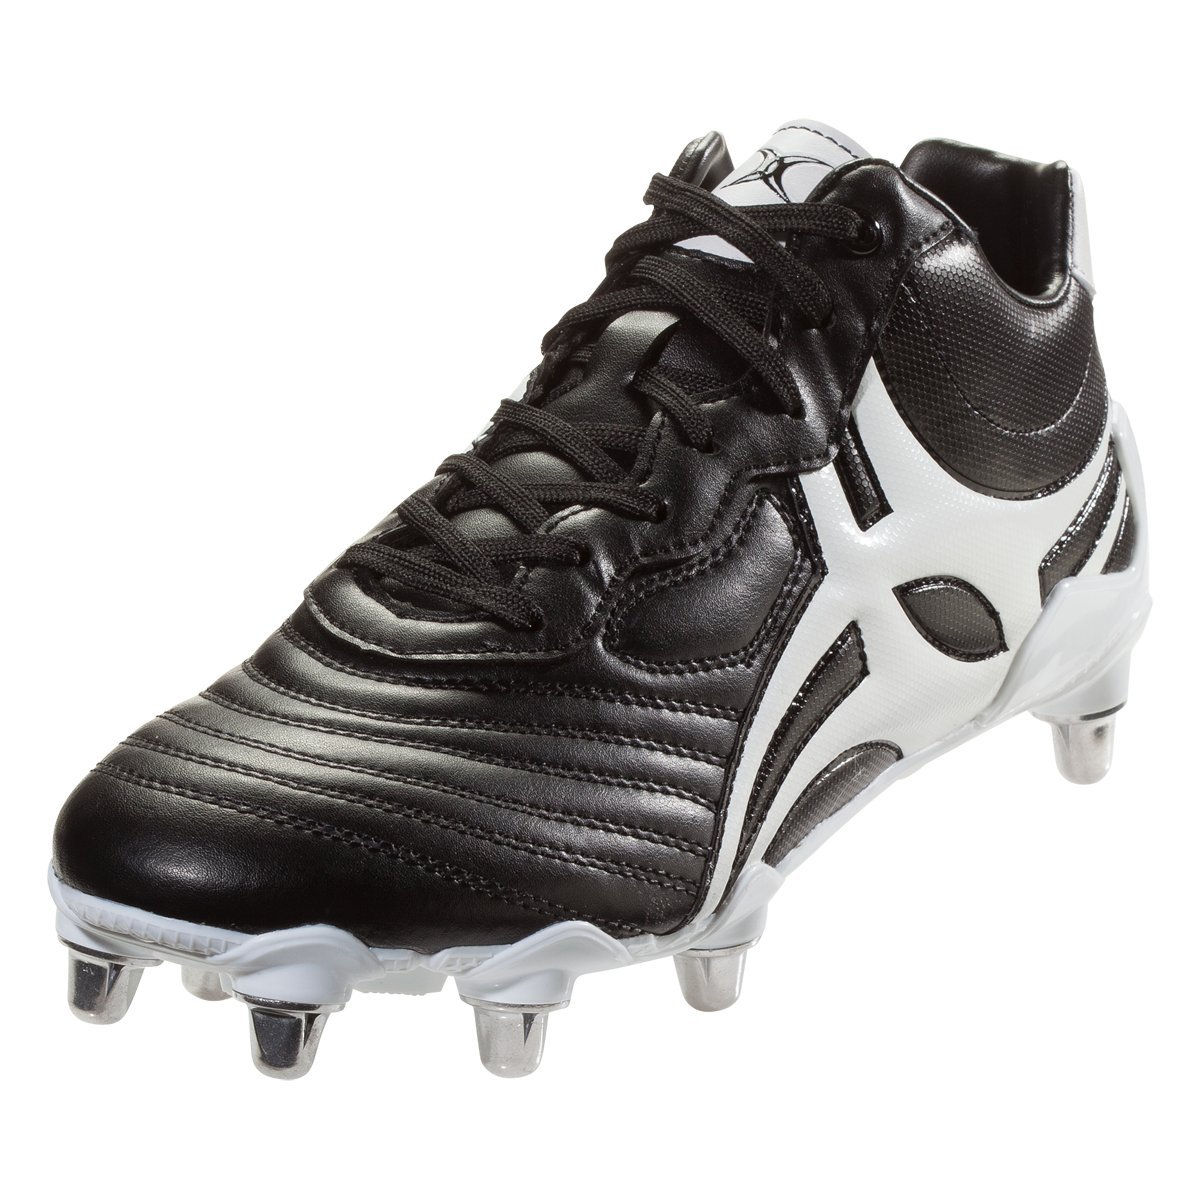 Gilbert Celera V3 High 8S Rugby Boot, Black, US 9